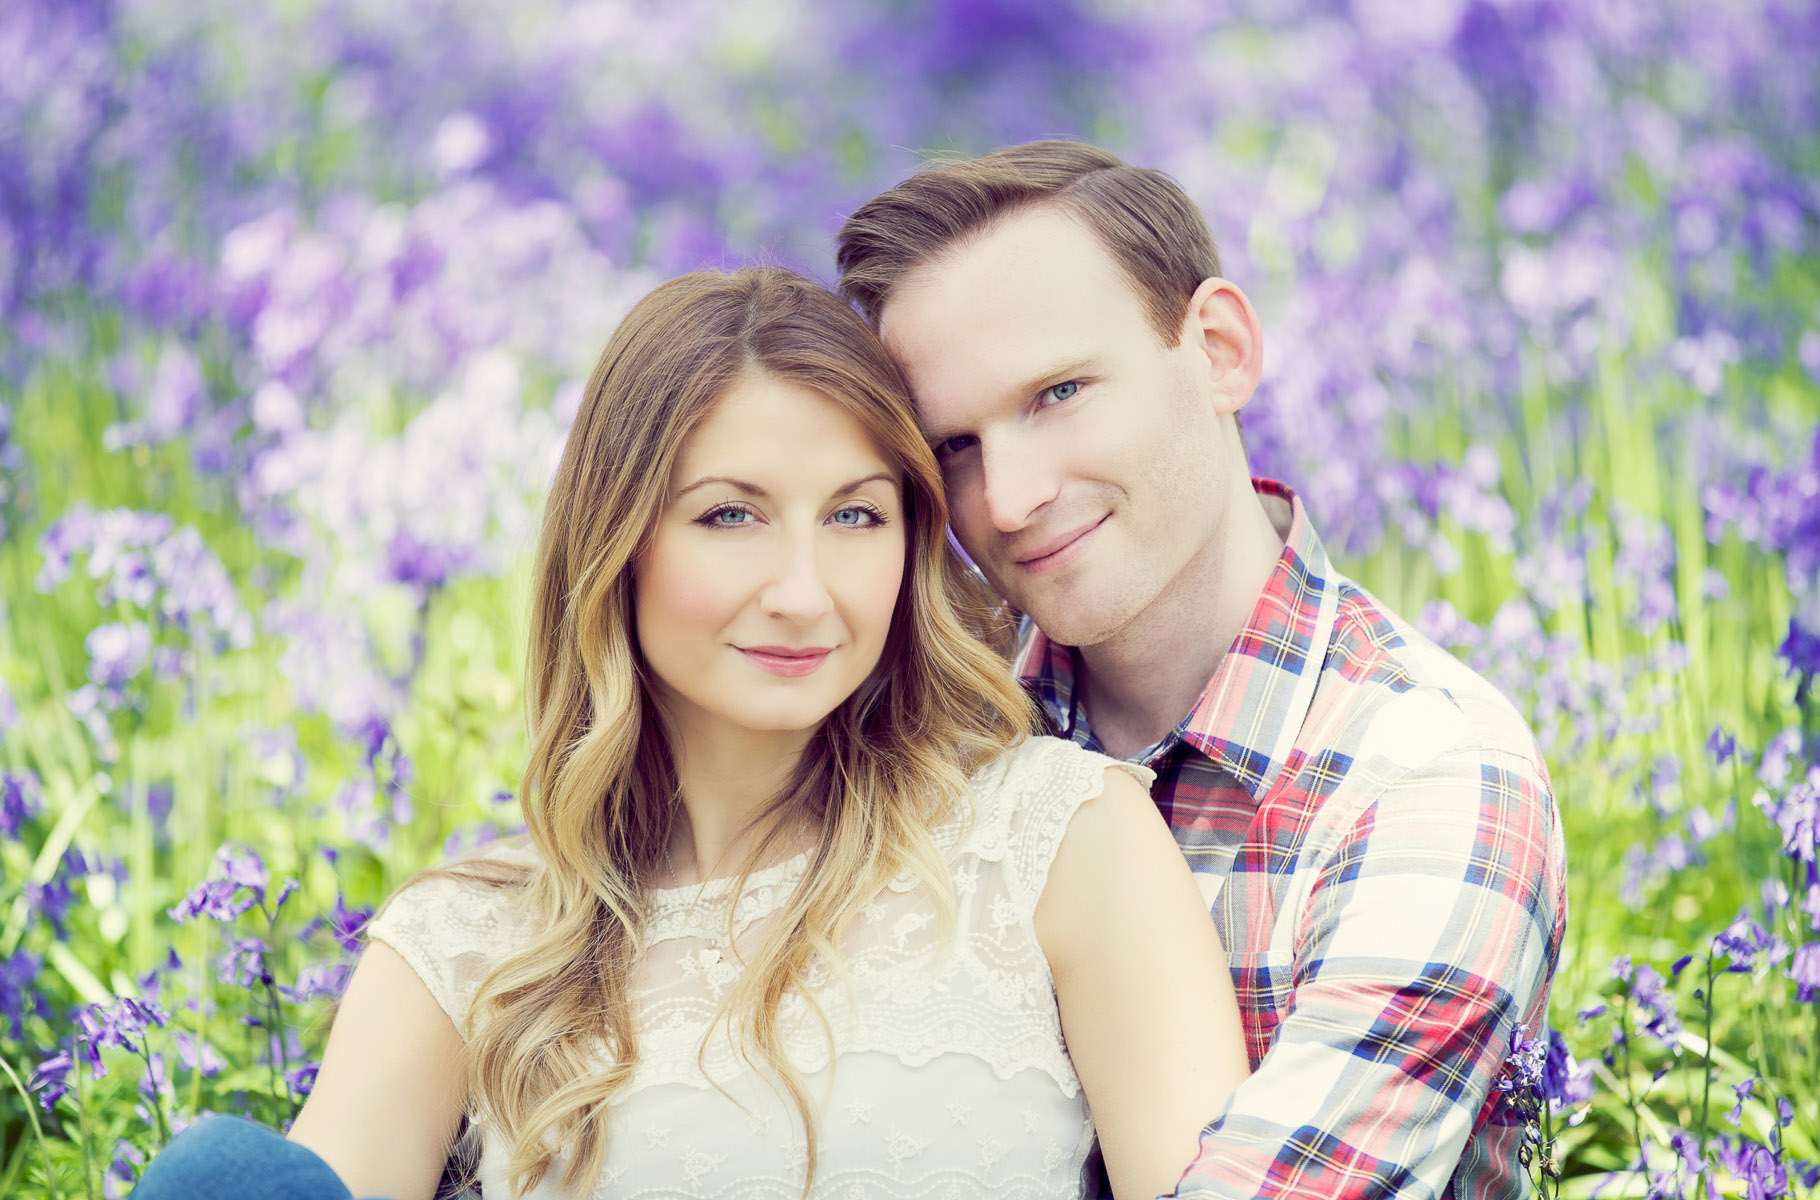 Engagement-Love-Photographer-Winchester-Hampshire-22